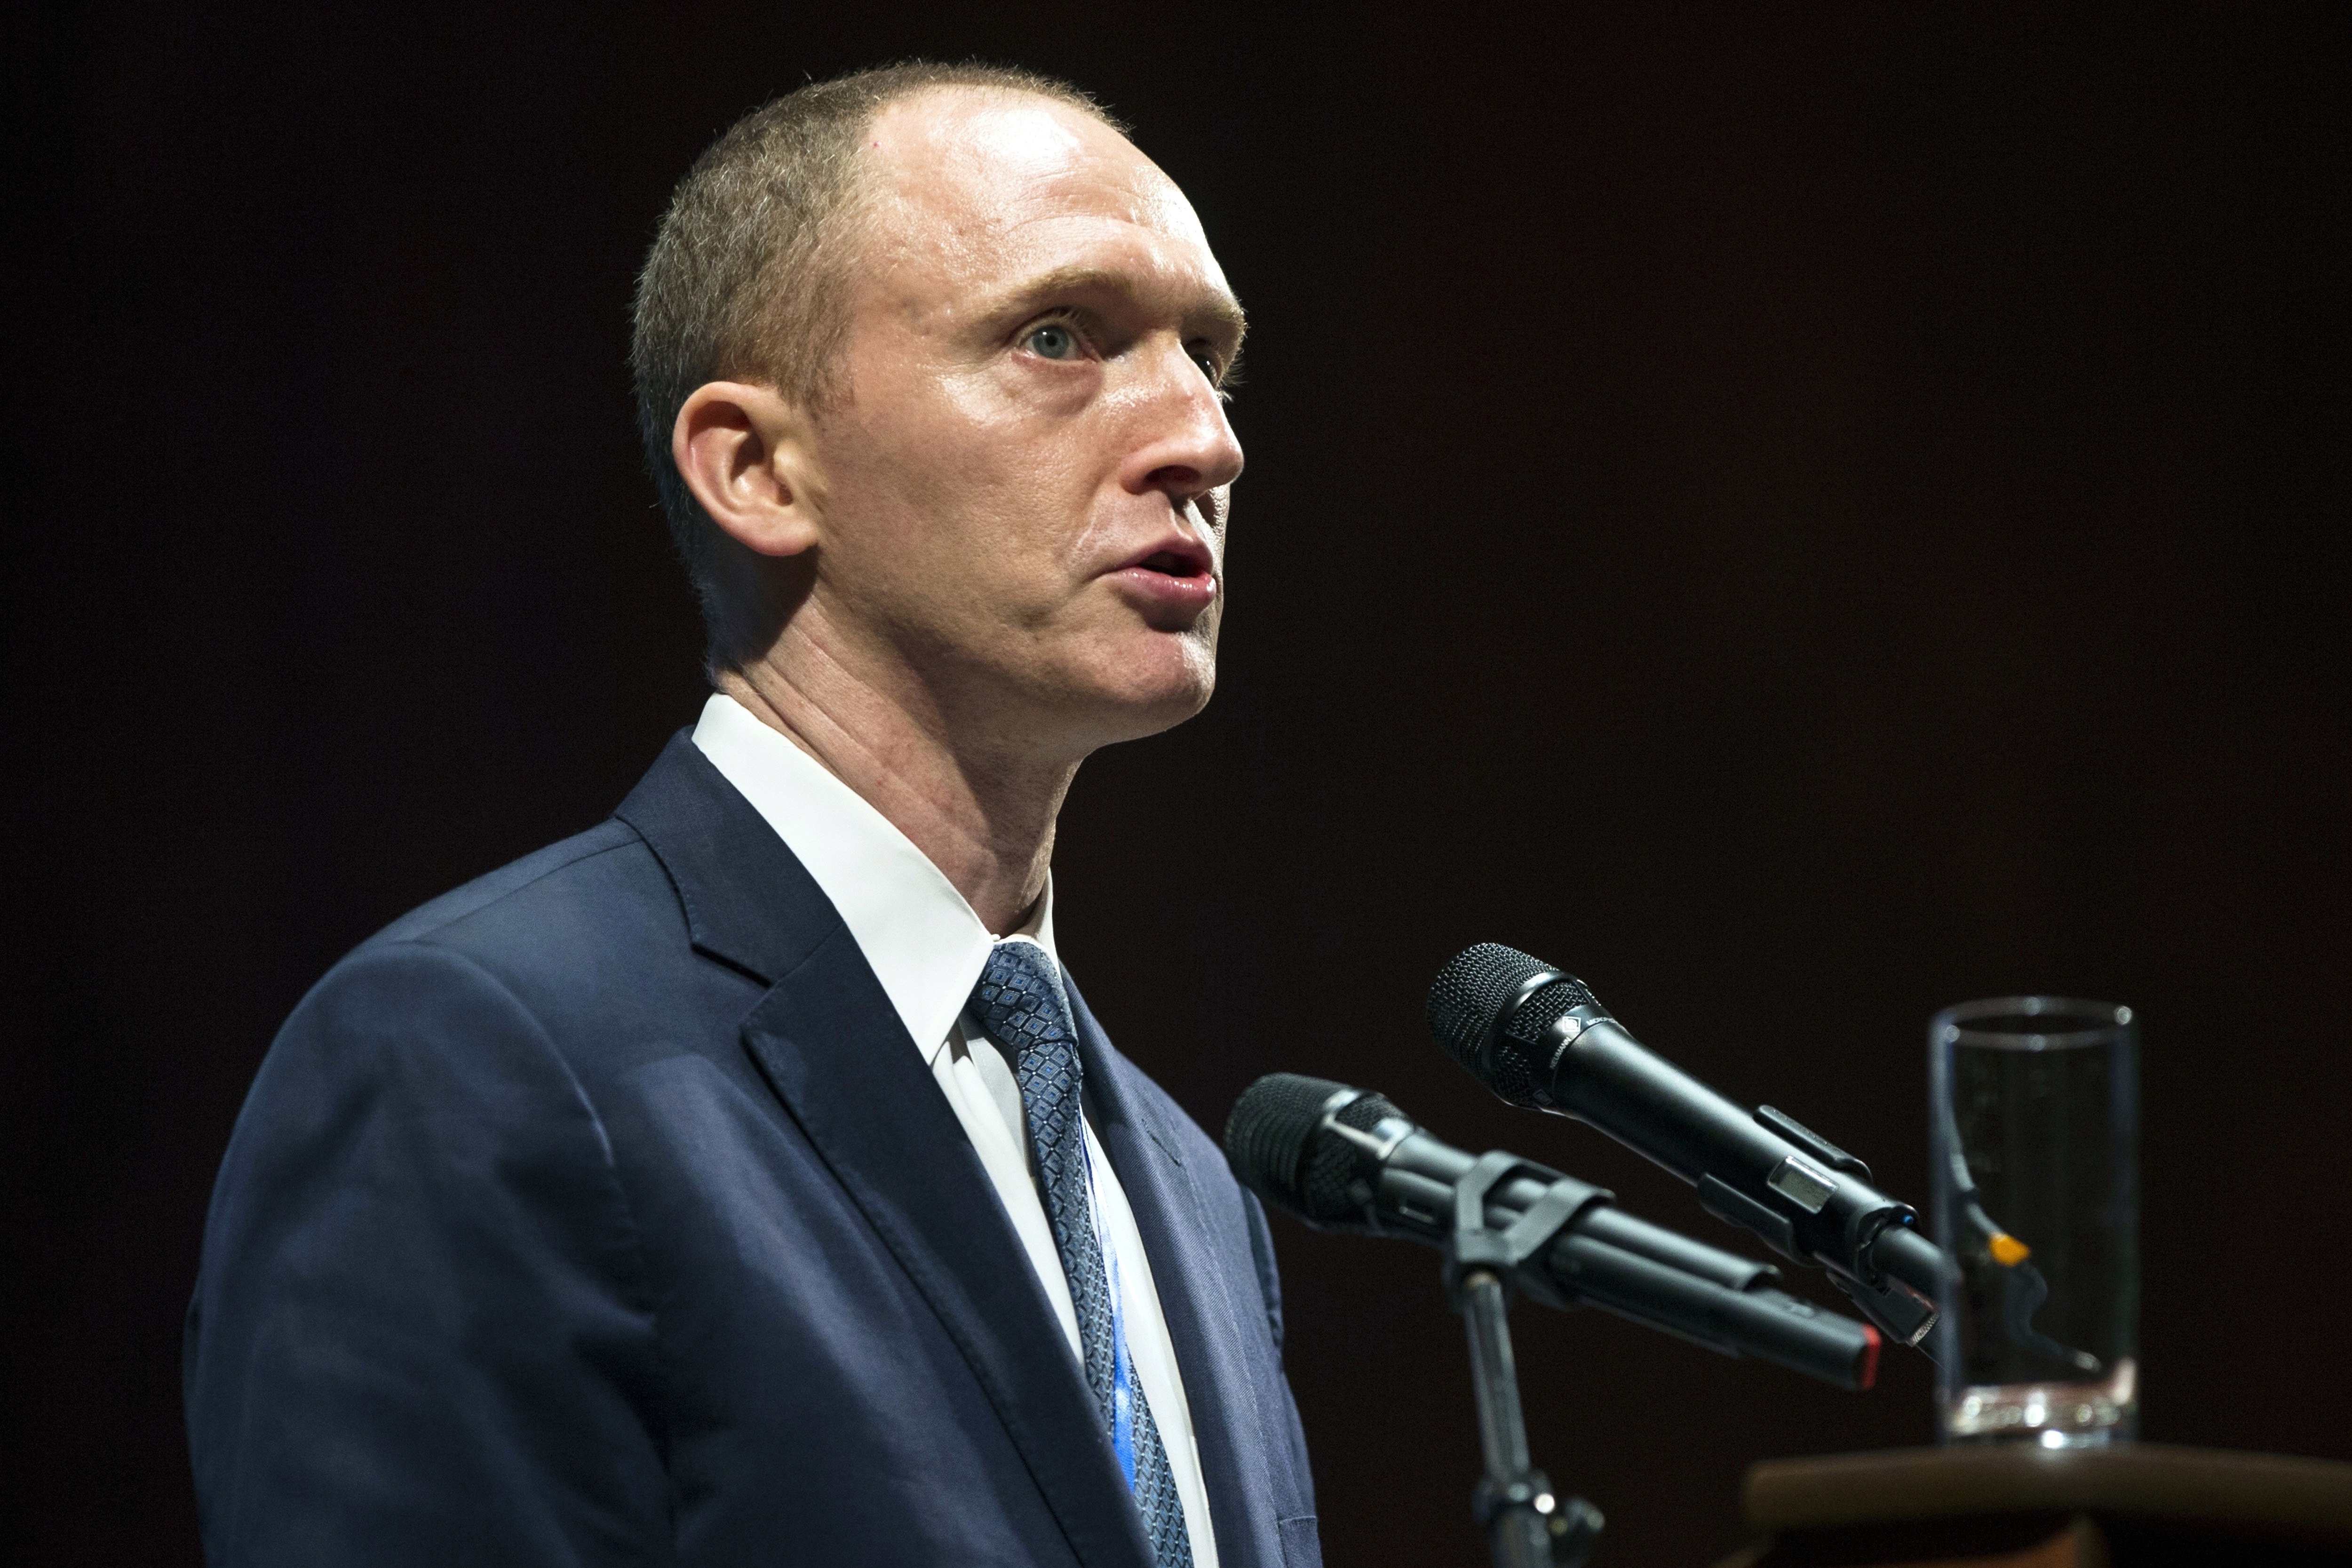 In this July 8, 2016, file photo, Carter Page, then adviser to U.S. presidential candidate Donald Trump, in Moscow, Russia.